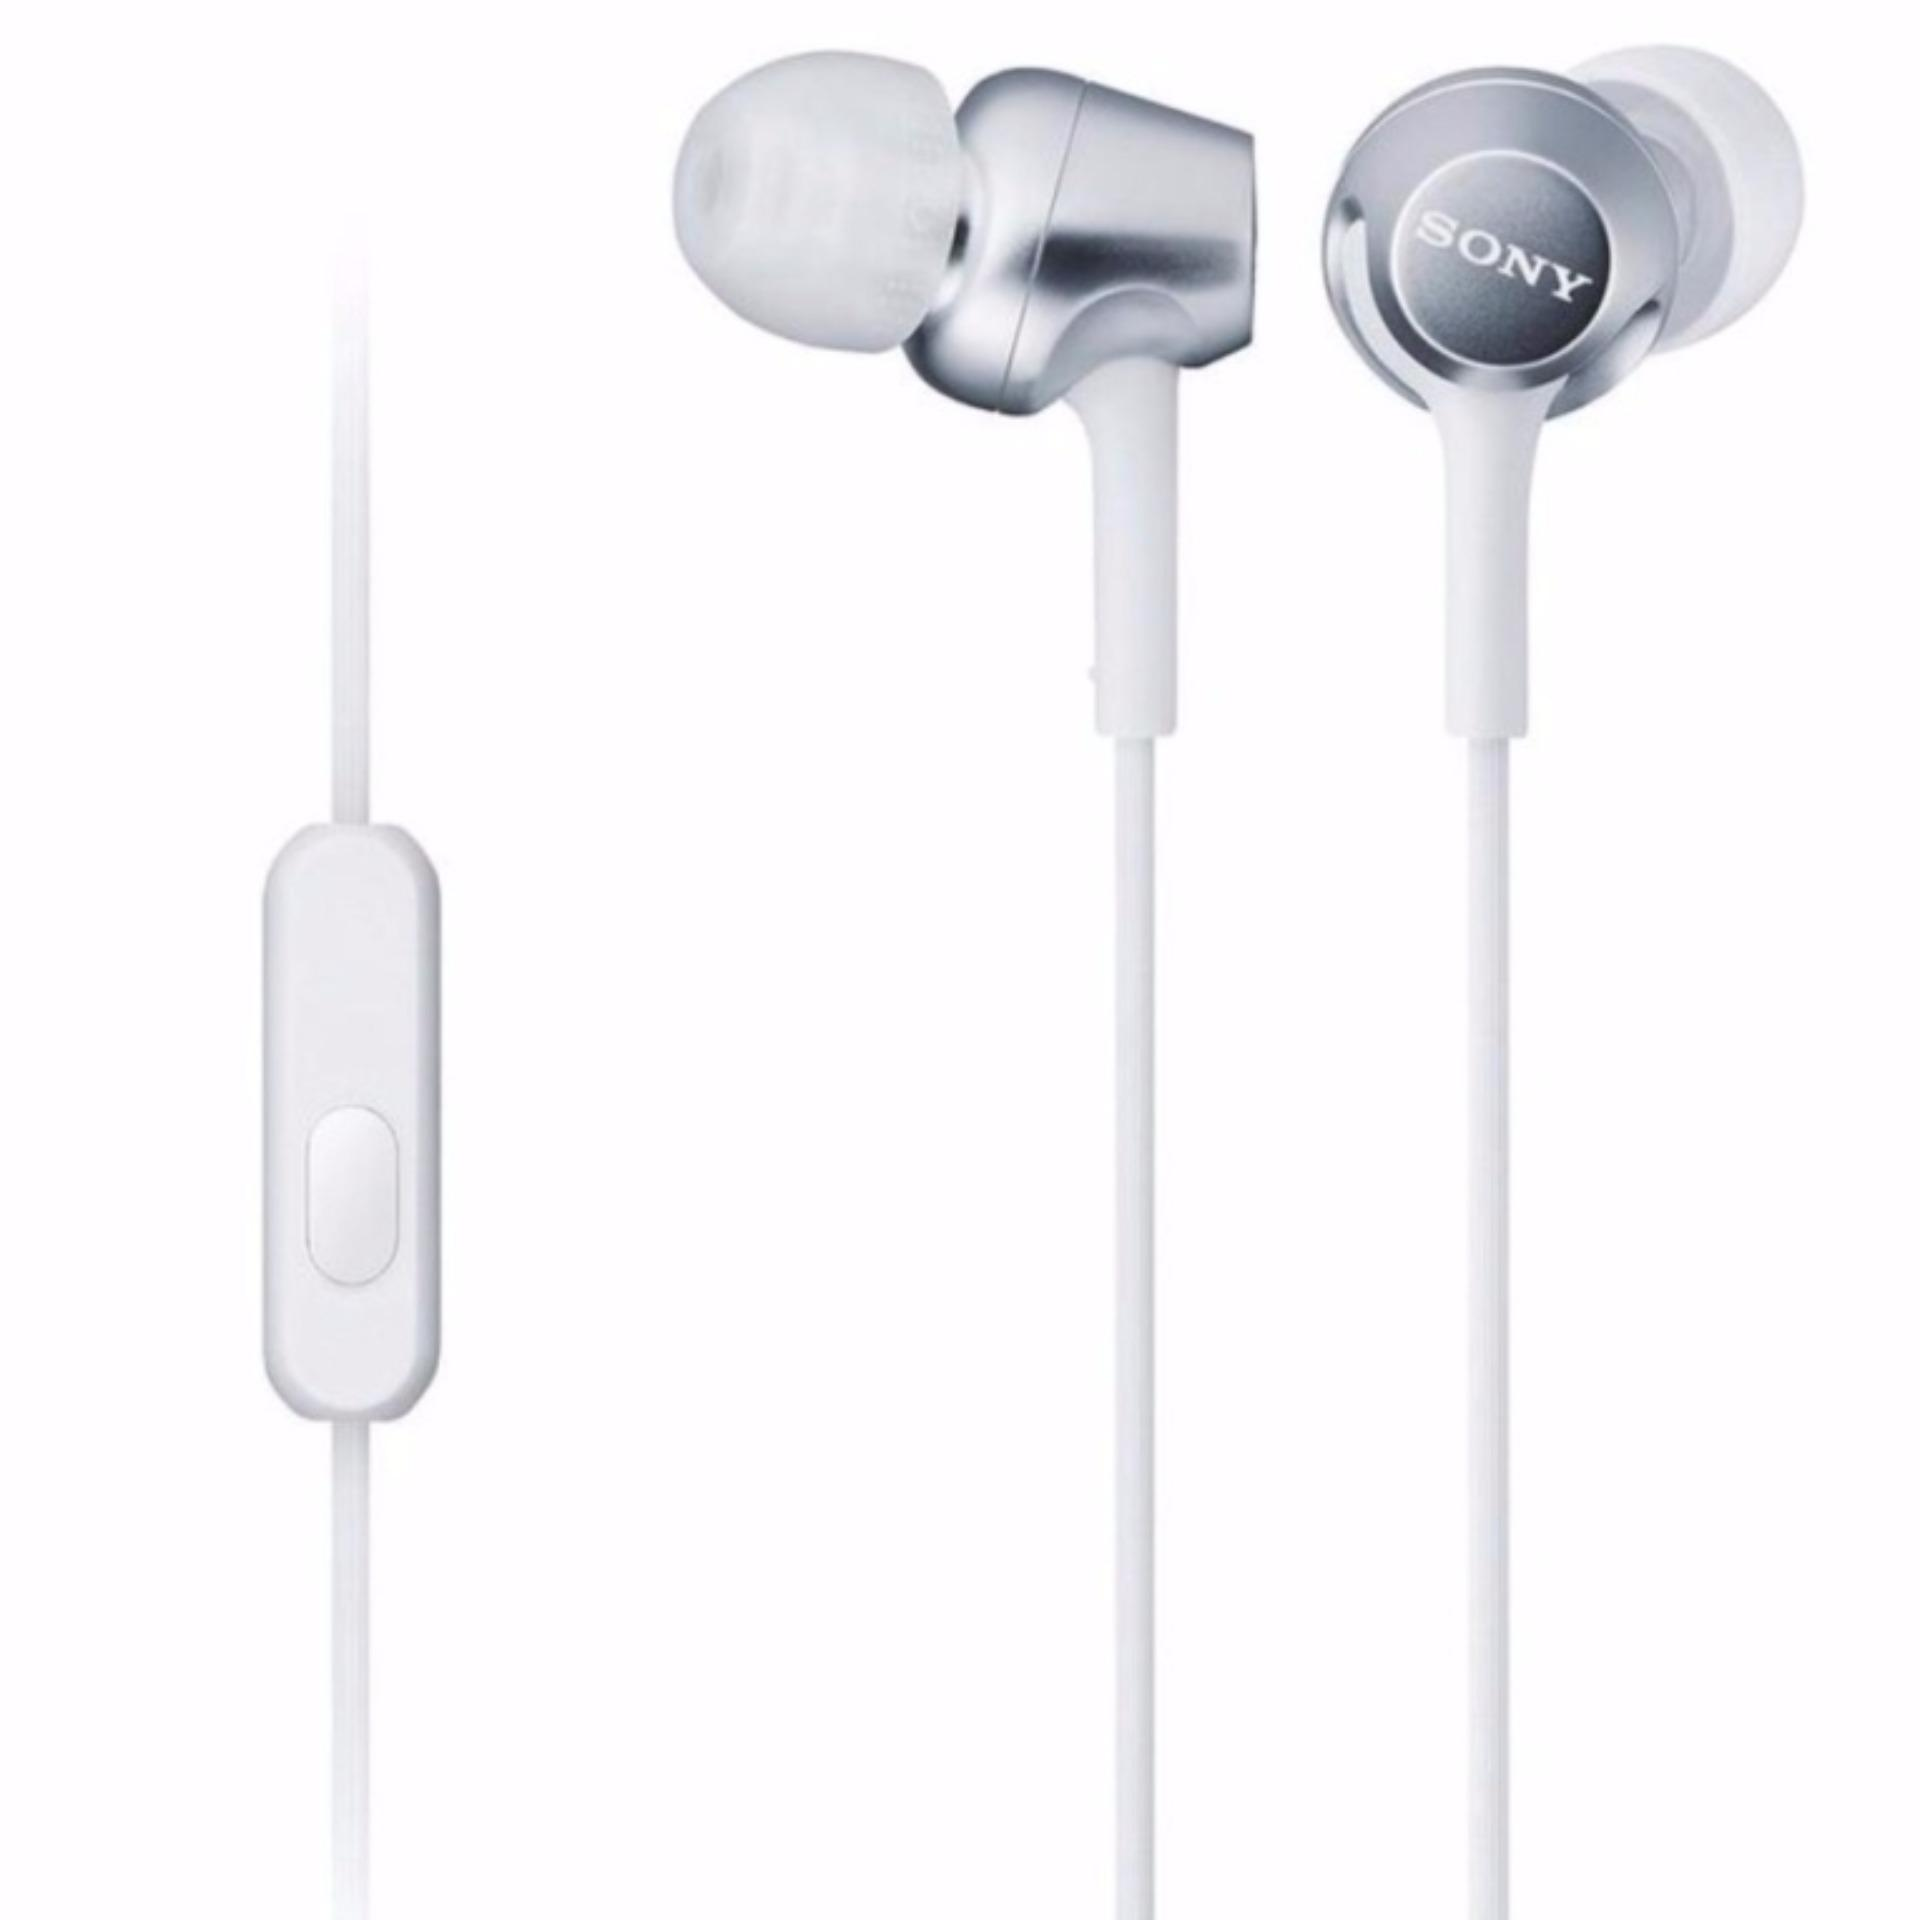 Sony Mdr Ex250ap Ex Monitor In Ear Headphone With Remote And Mic For Earphone Xb80bs Extra Bass Sports Bluetooth Smartphone Singapore